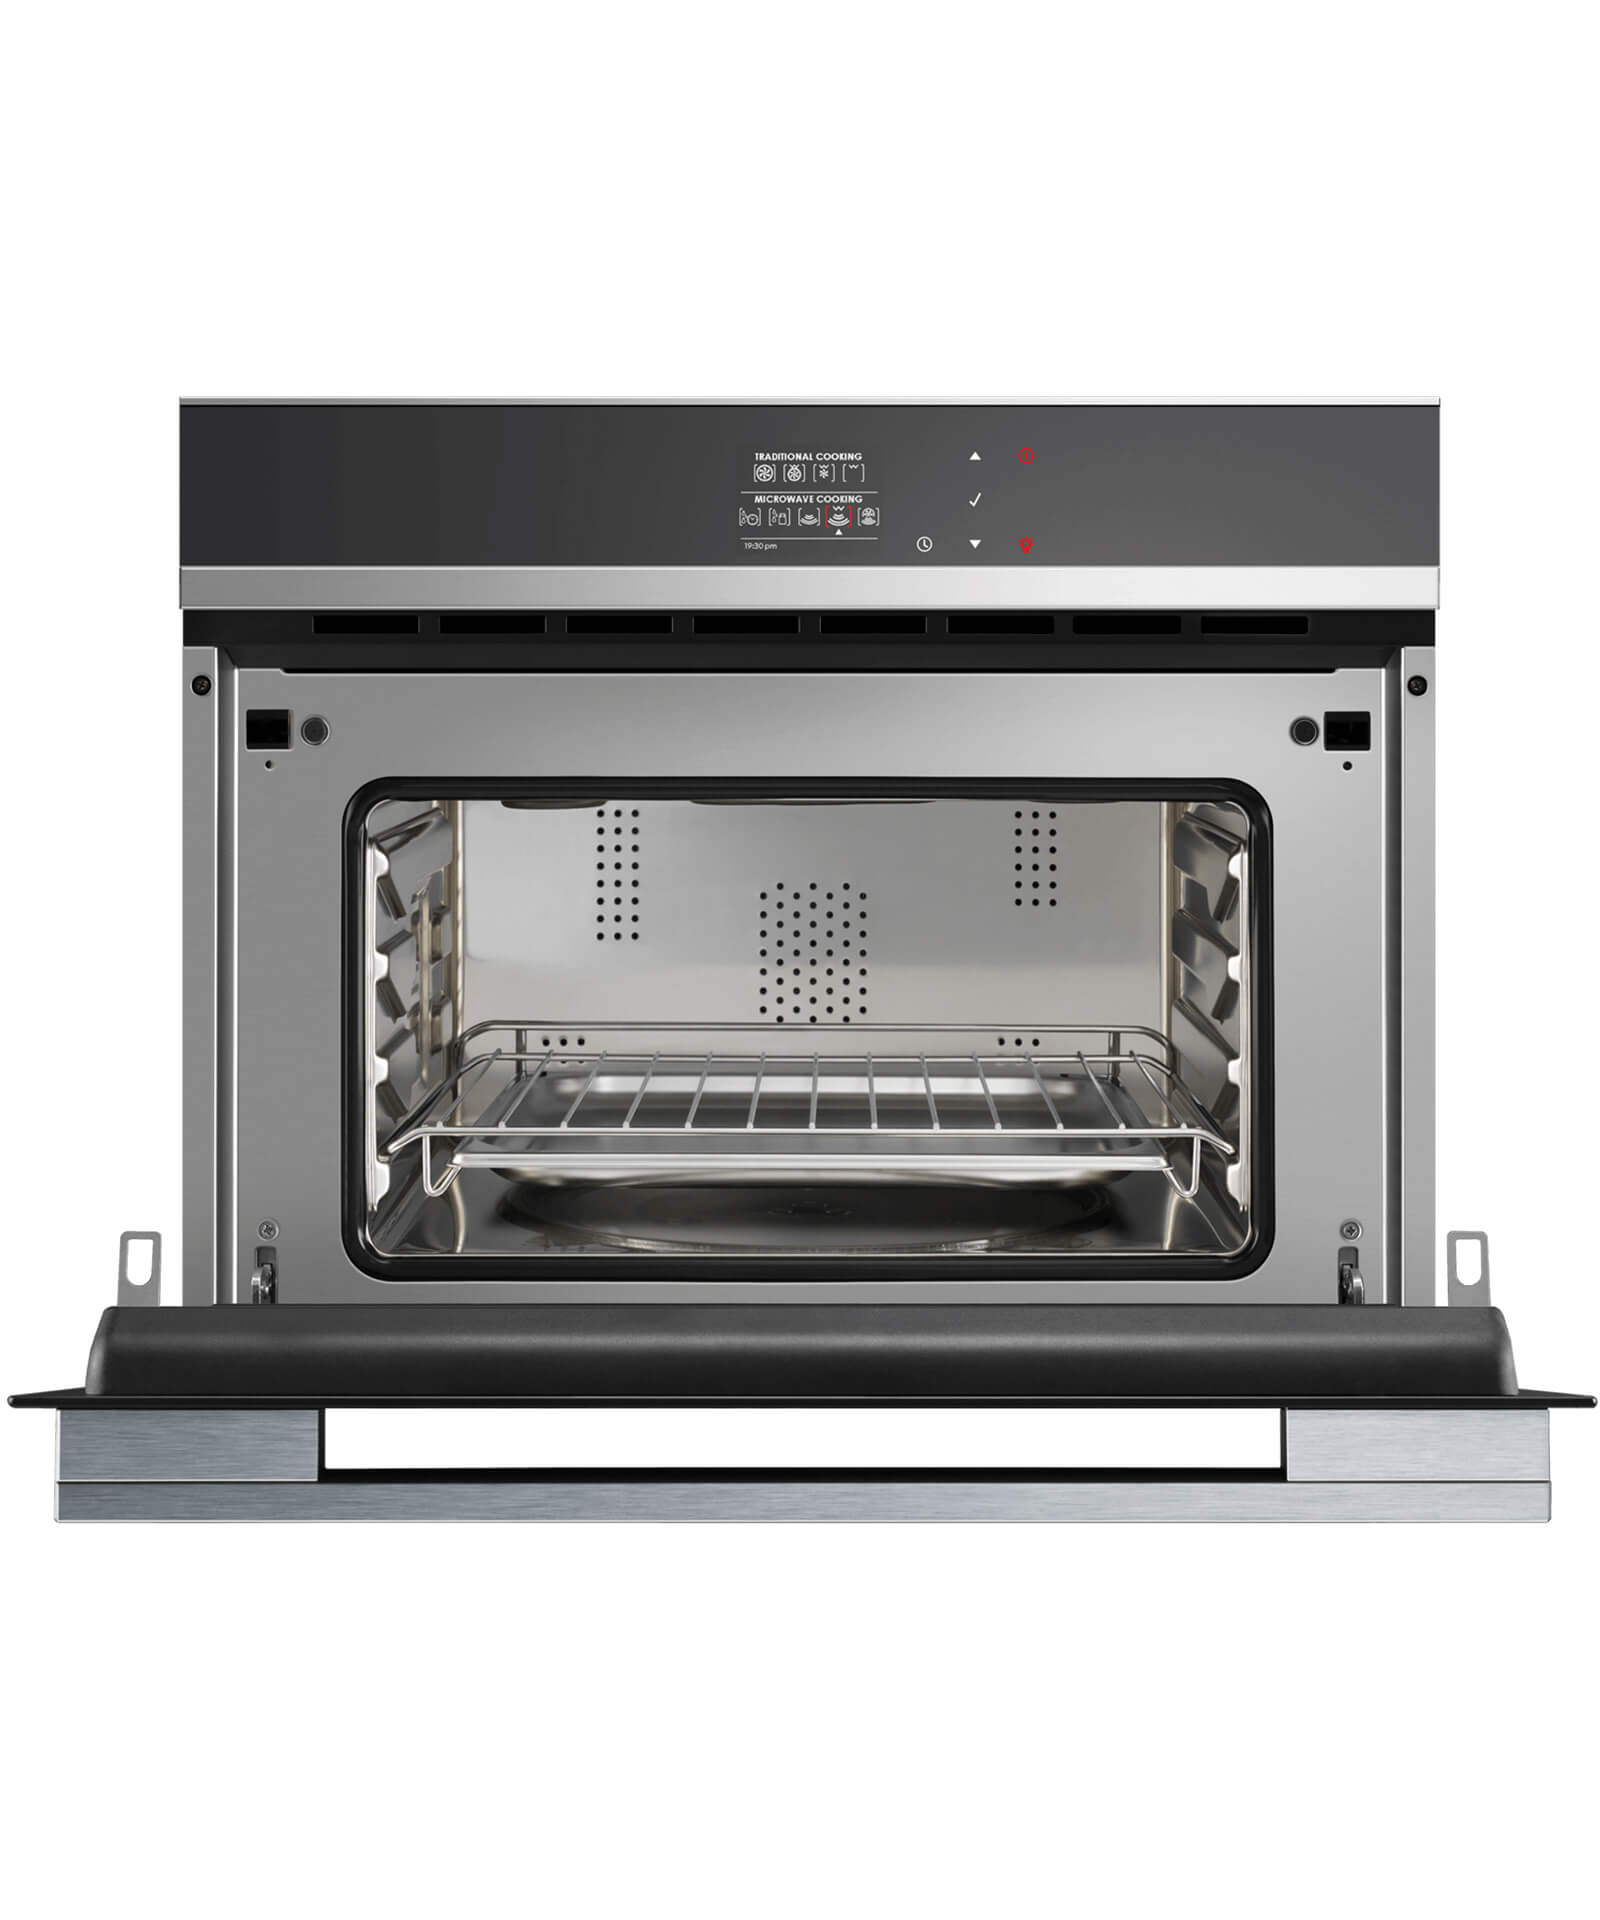 Om60ndb1 Built In Combination Microwave Oven 60cm